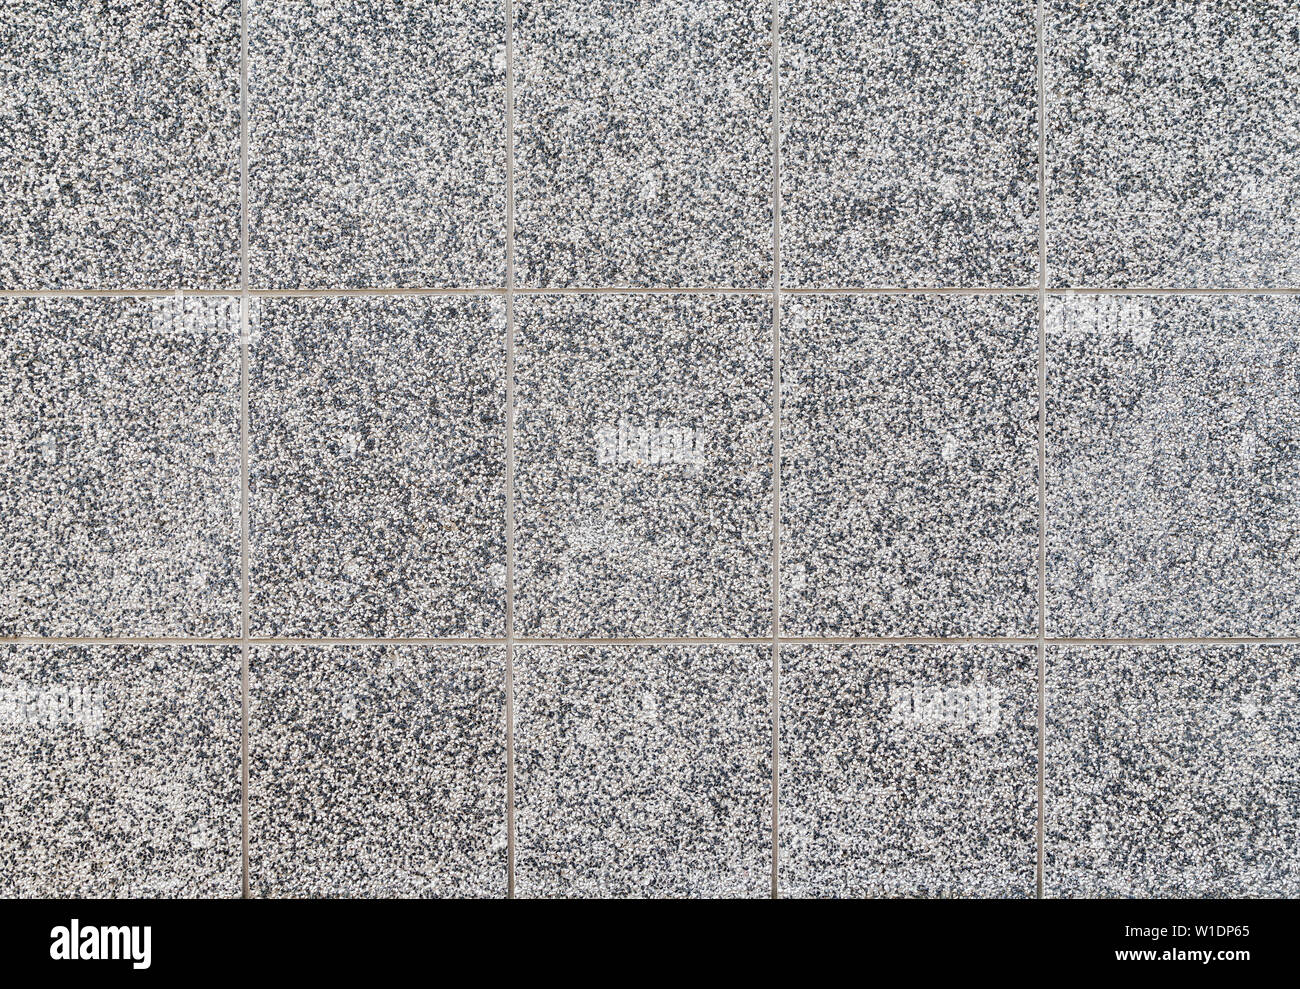 High resolution full frame textured background of a building exterior wall with small mixed black and white pebbles. Stock Photo